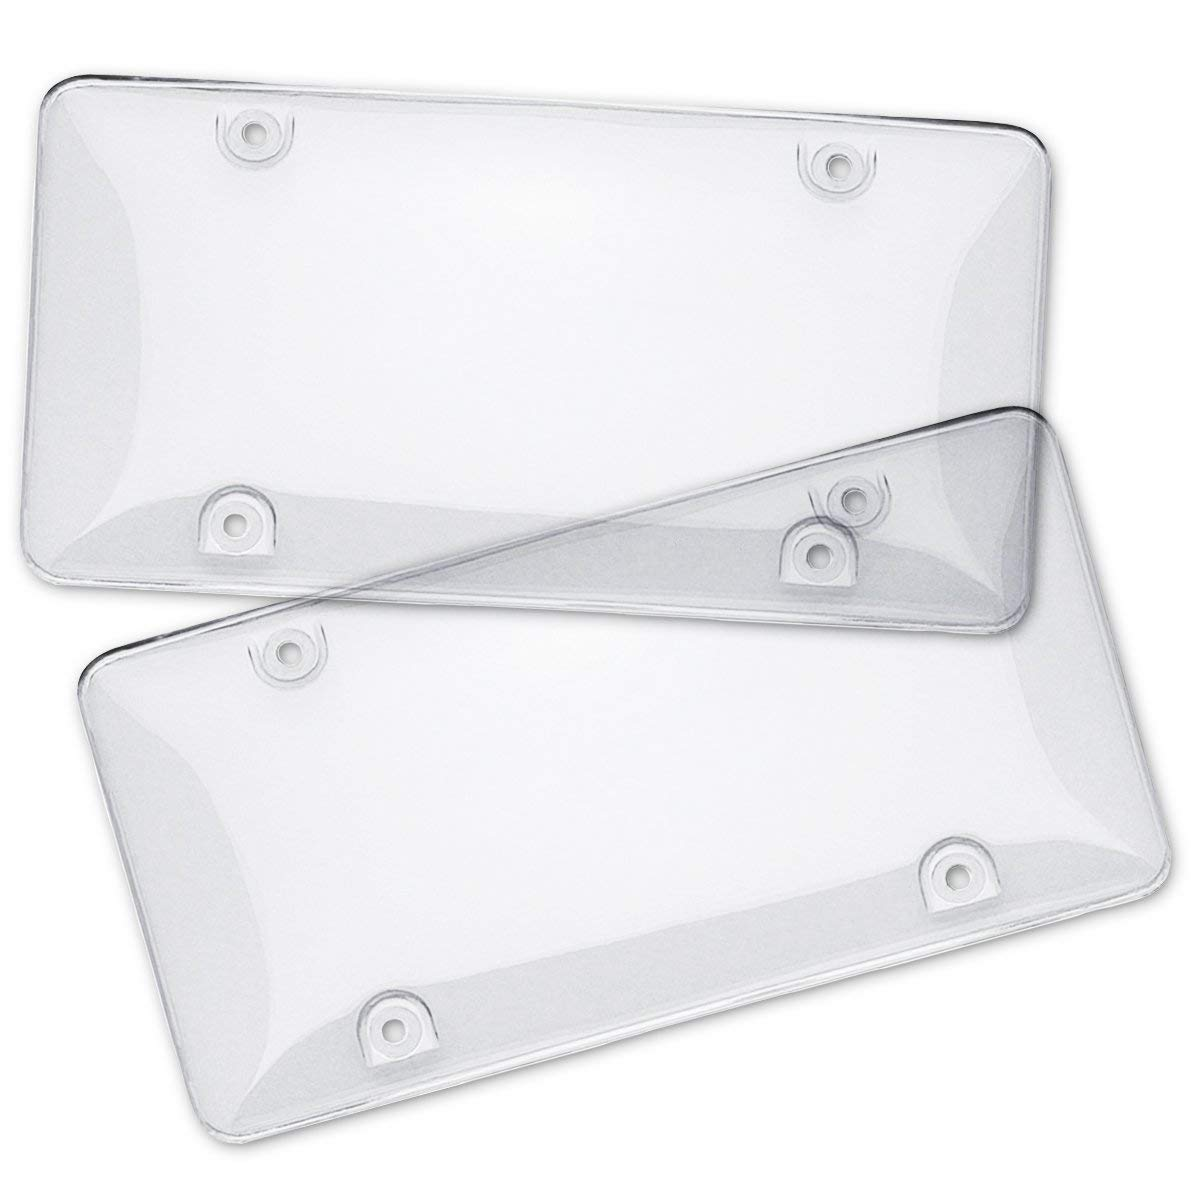 Flat License Plate Cover Clear, Canada Car Plate Cover Shield - 2 Pack Novelty R1808PZ10